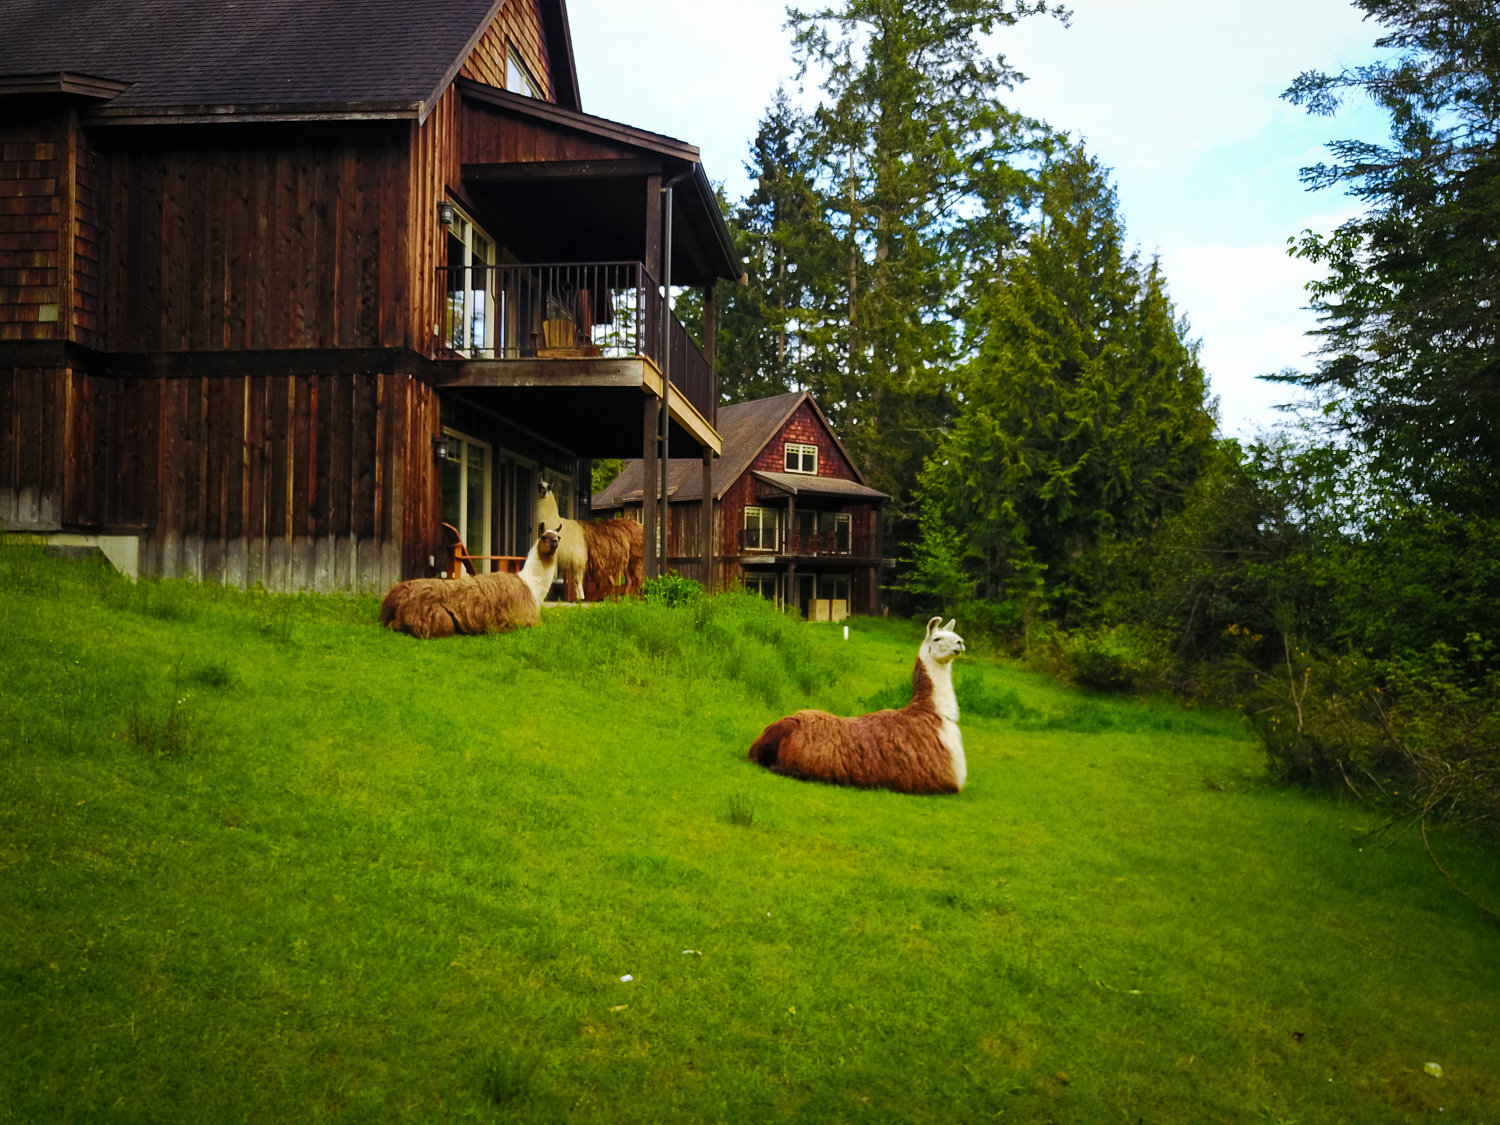 The Cottages With LLamas!